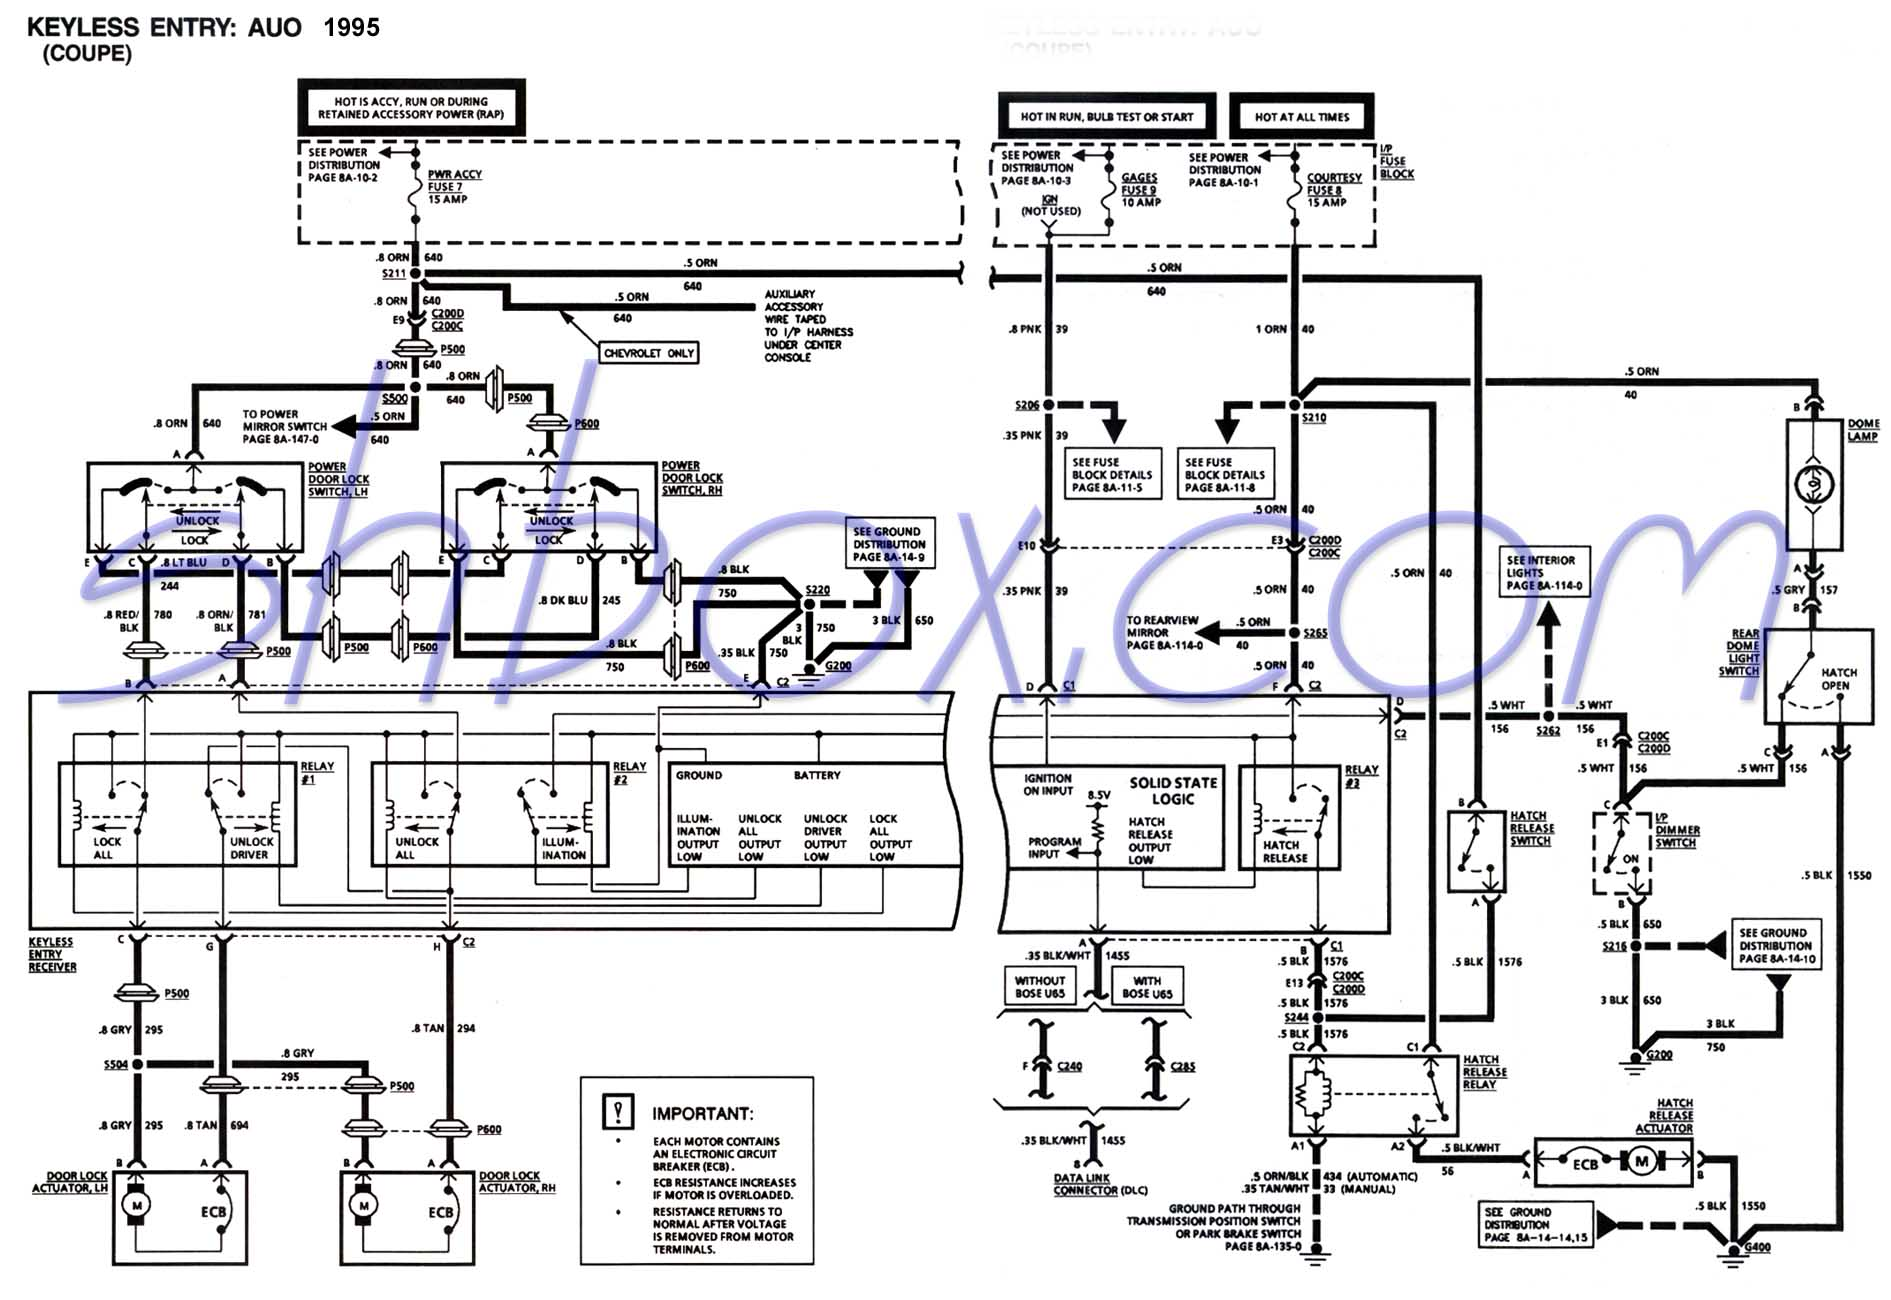 Keyless Entry Schematic (Coupe)